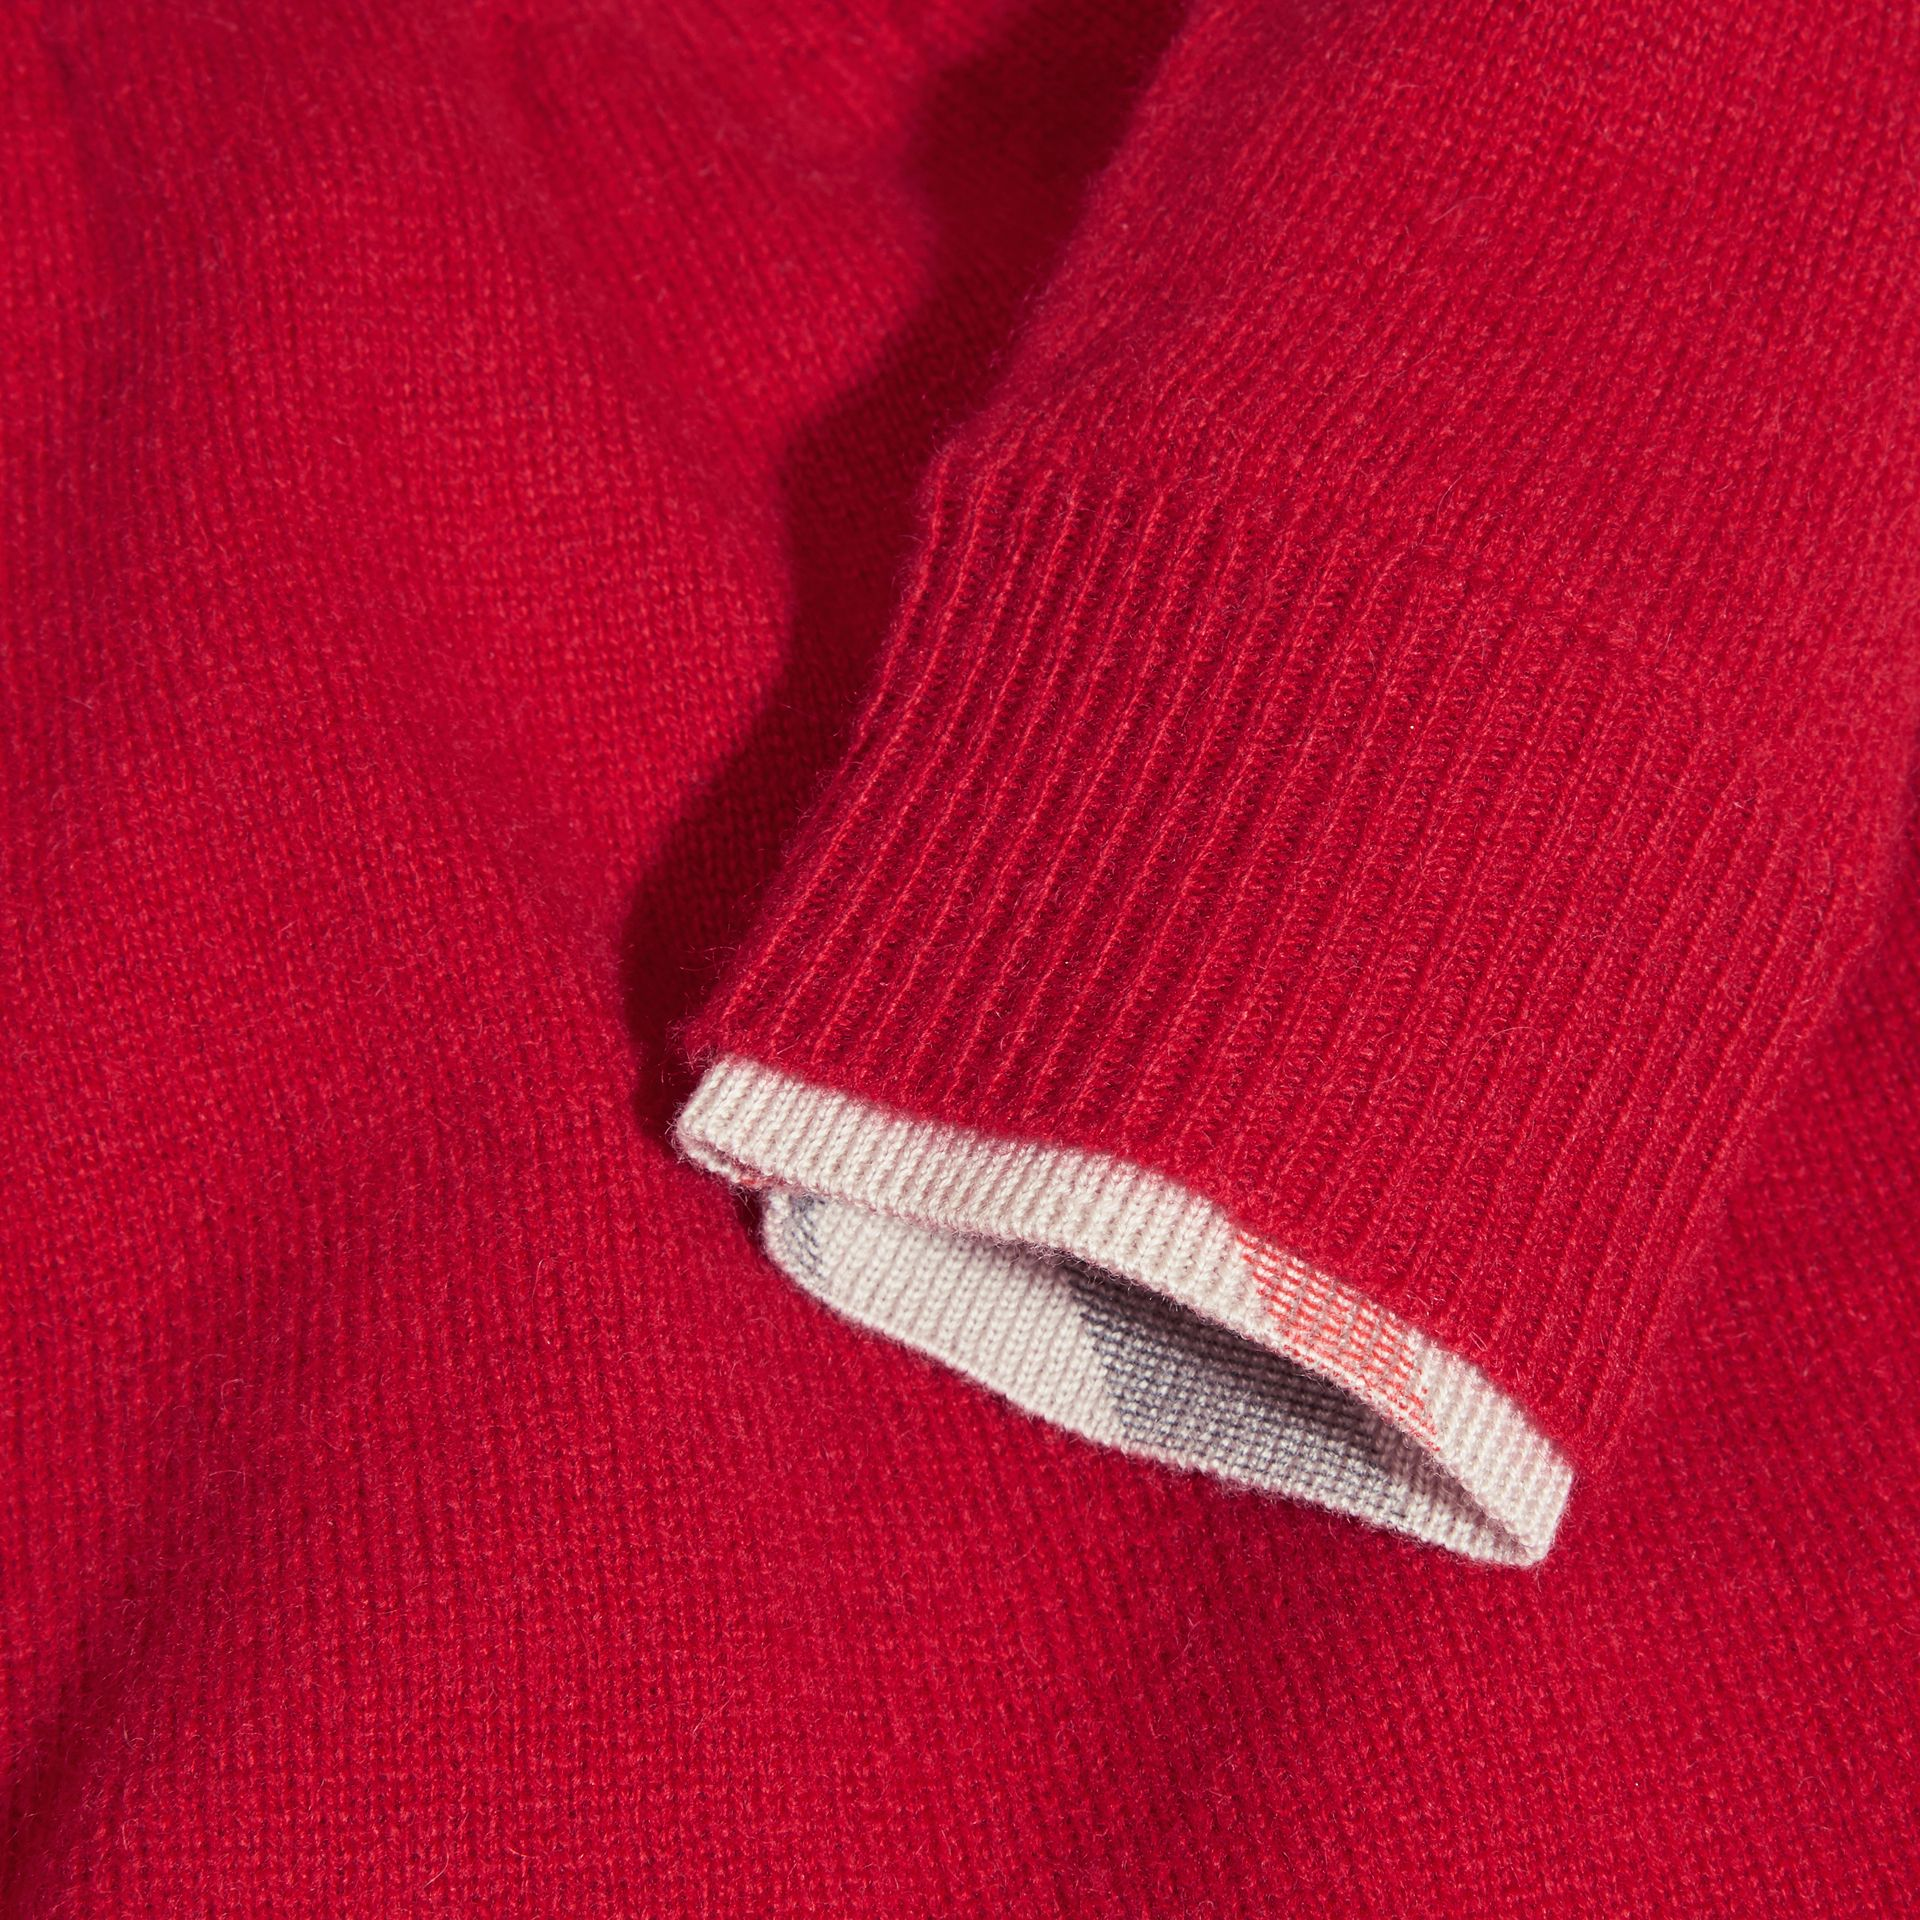 Parade red Check Cuff Knitted Cashmere Dress Parade Red - gallery image 2